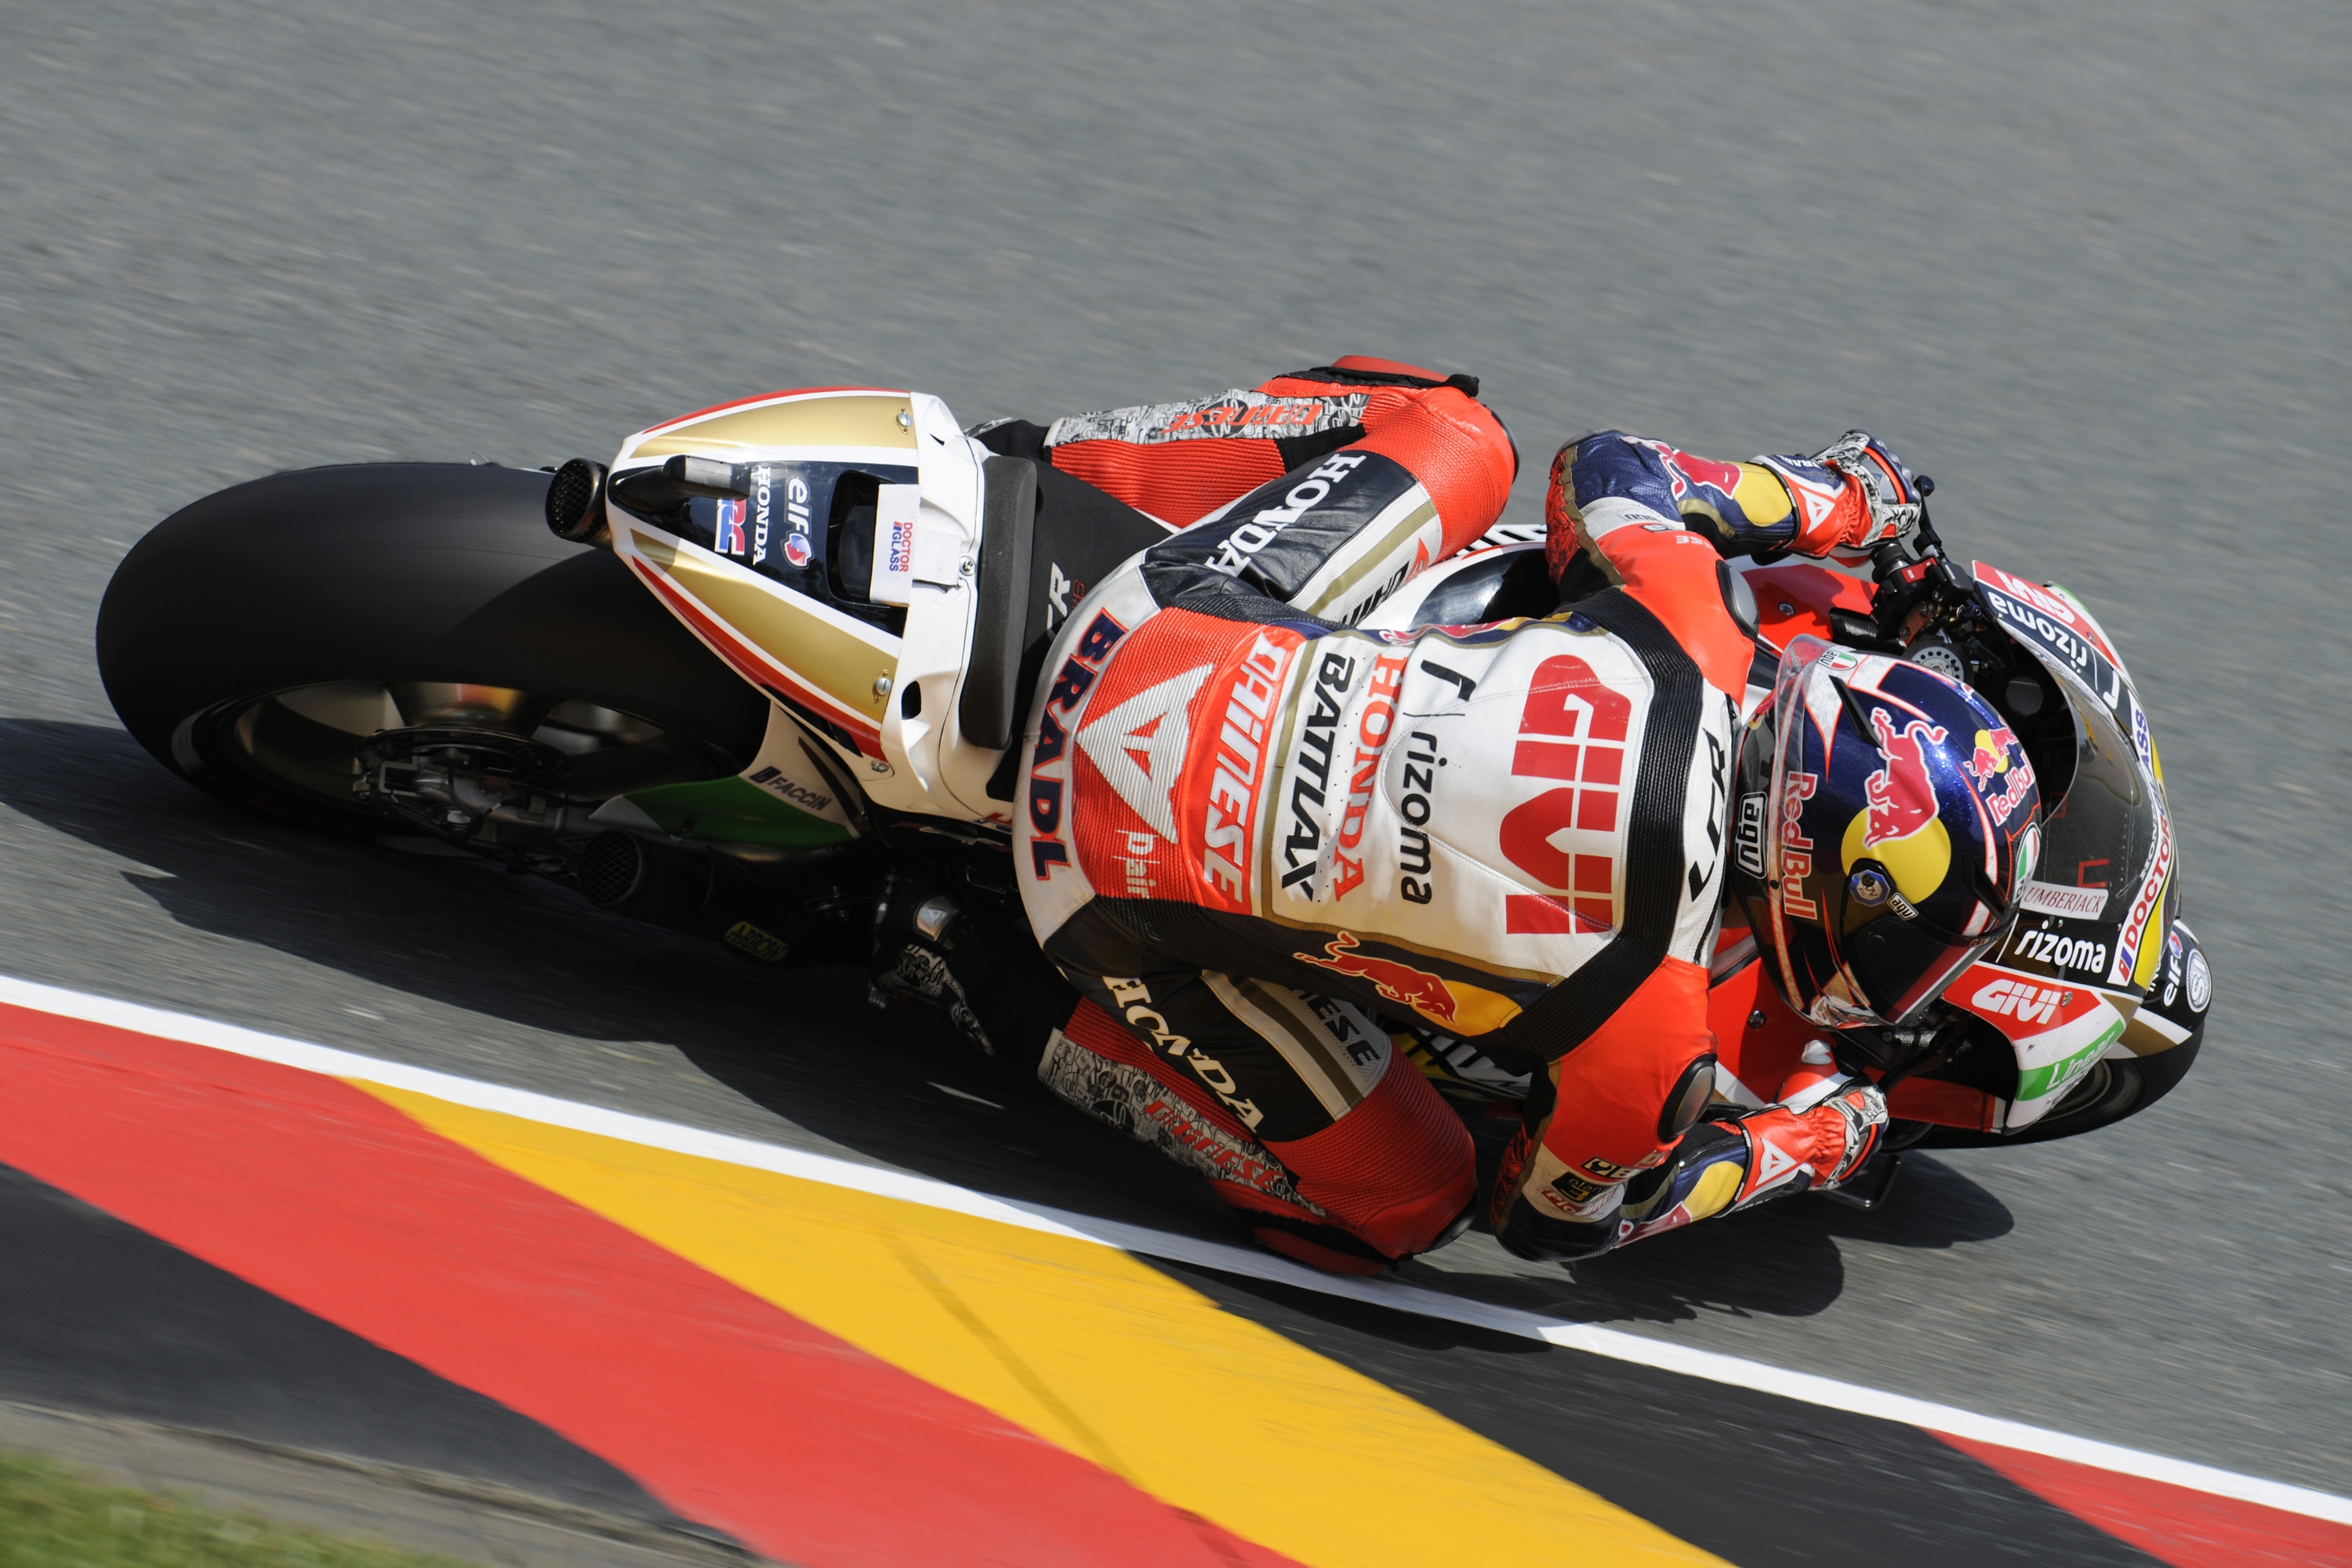 Bradl leads Friday practice at Sachsenring